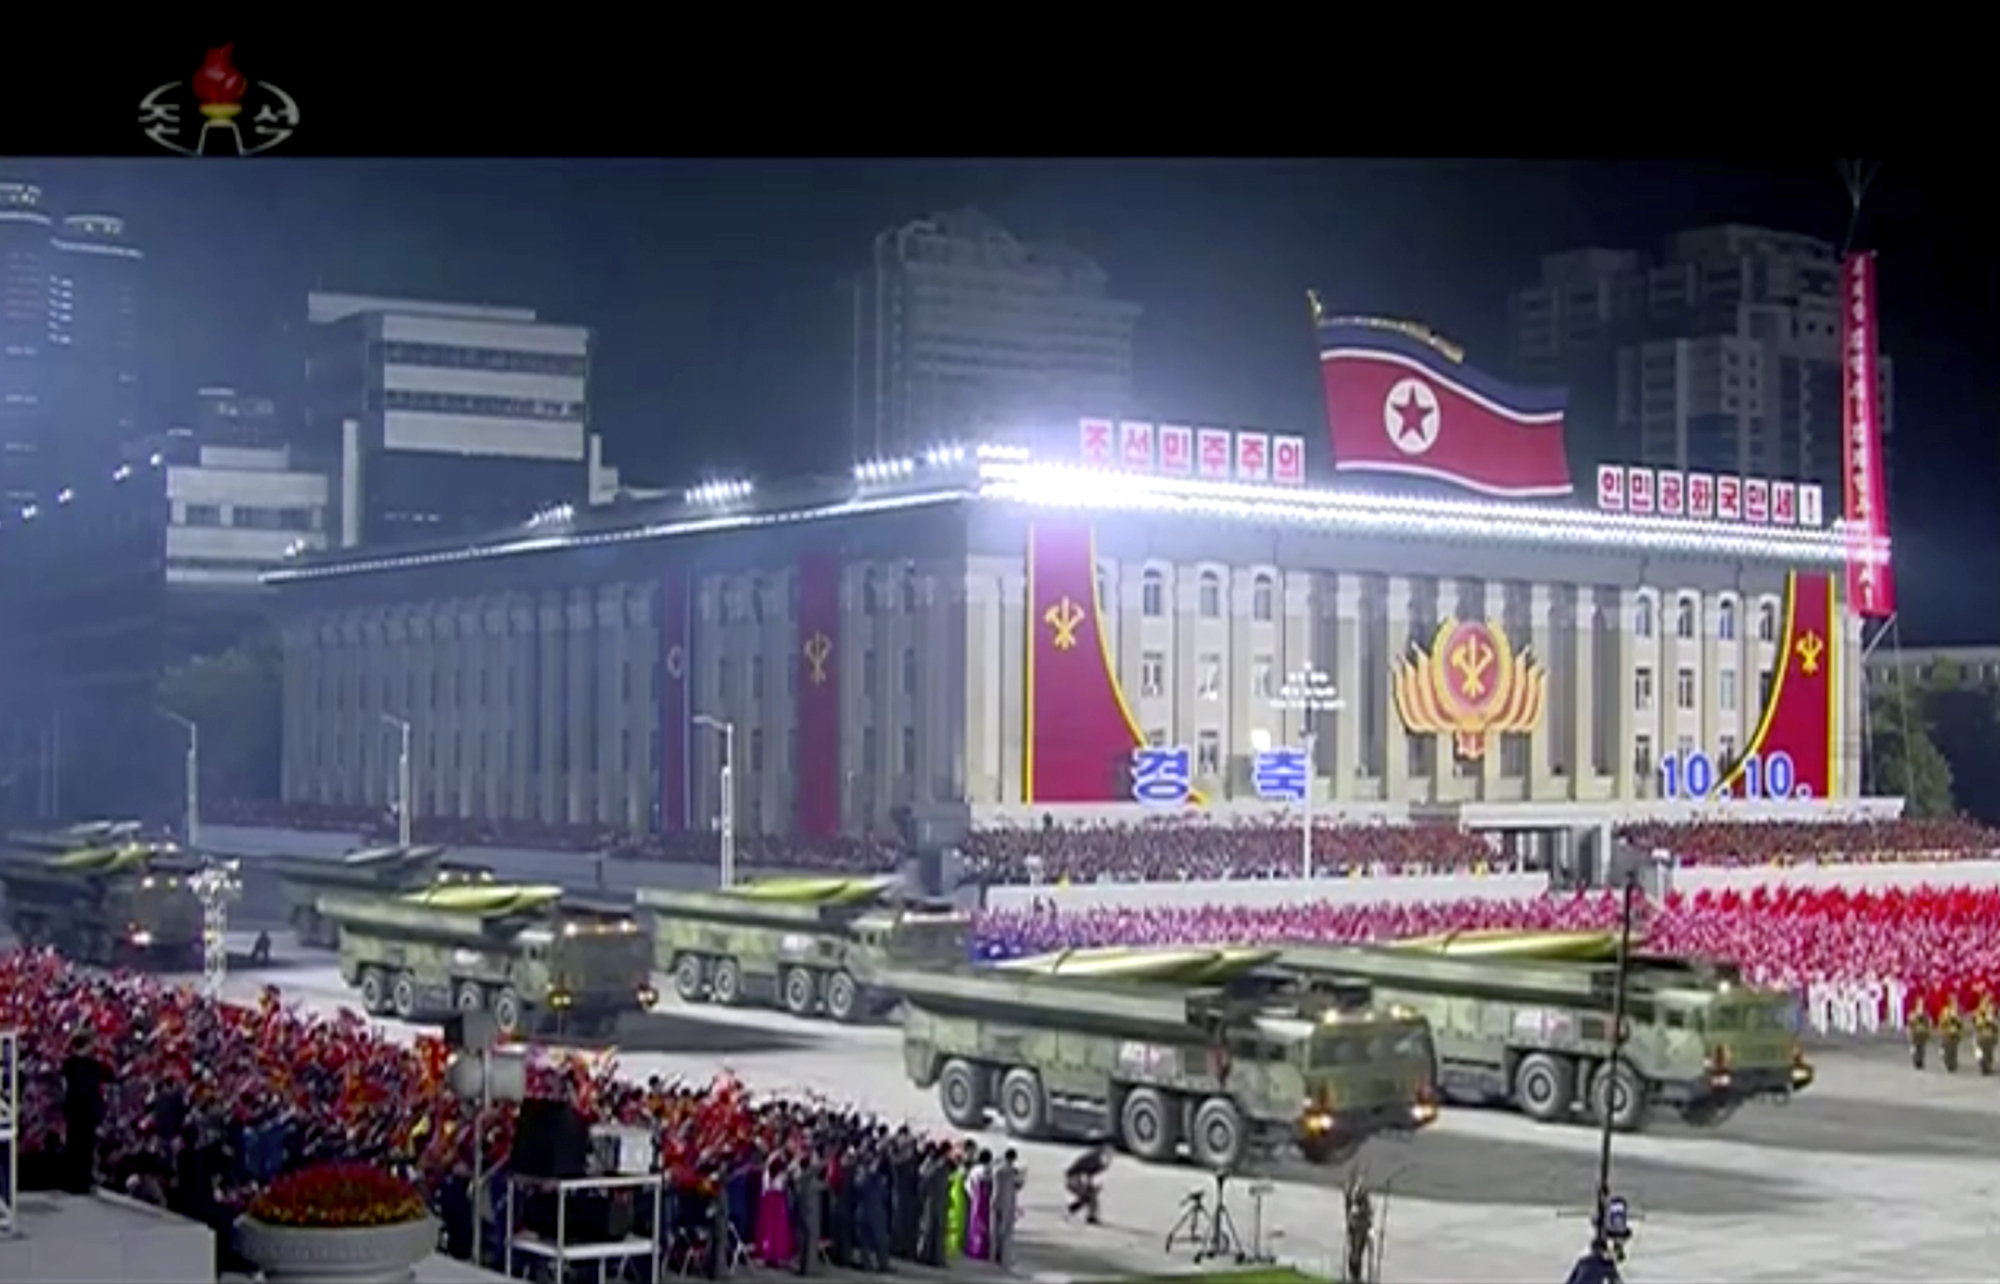 North Korea held a military parade Oct. 10, 2020. (KRT via AP)